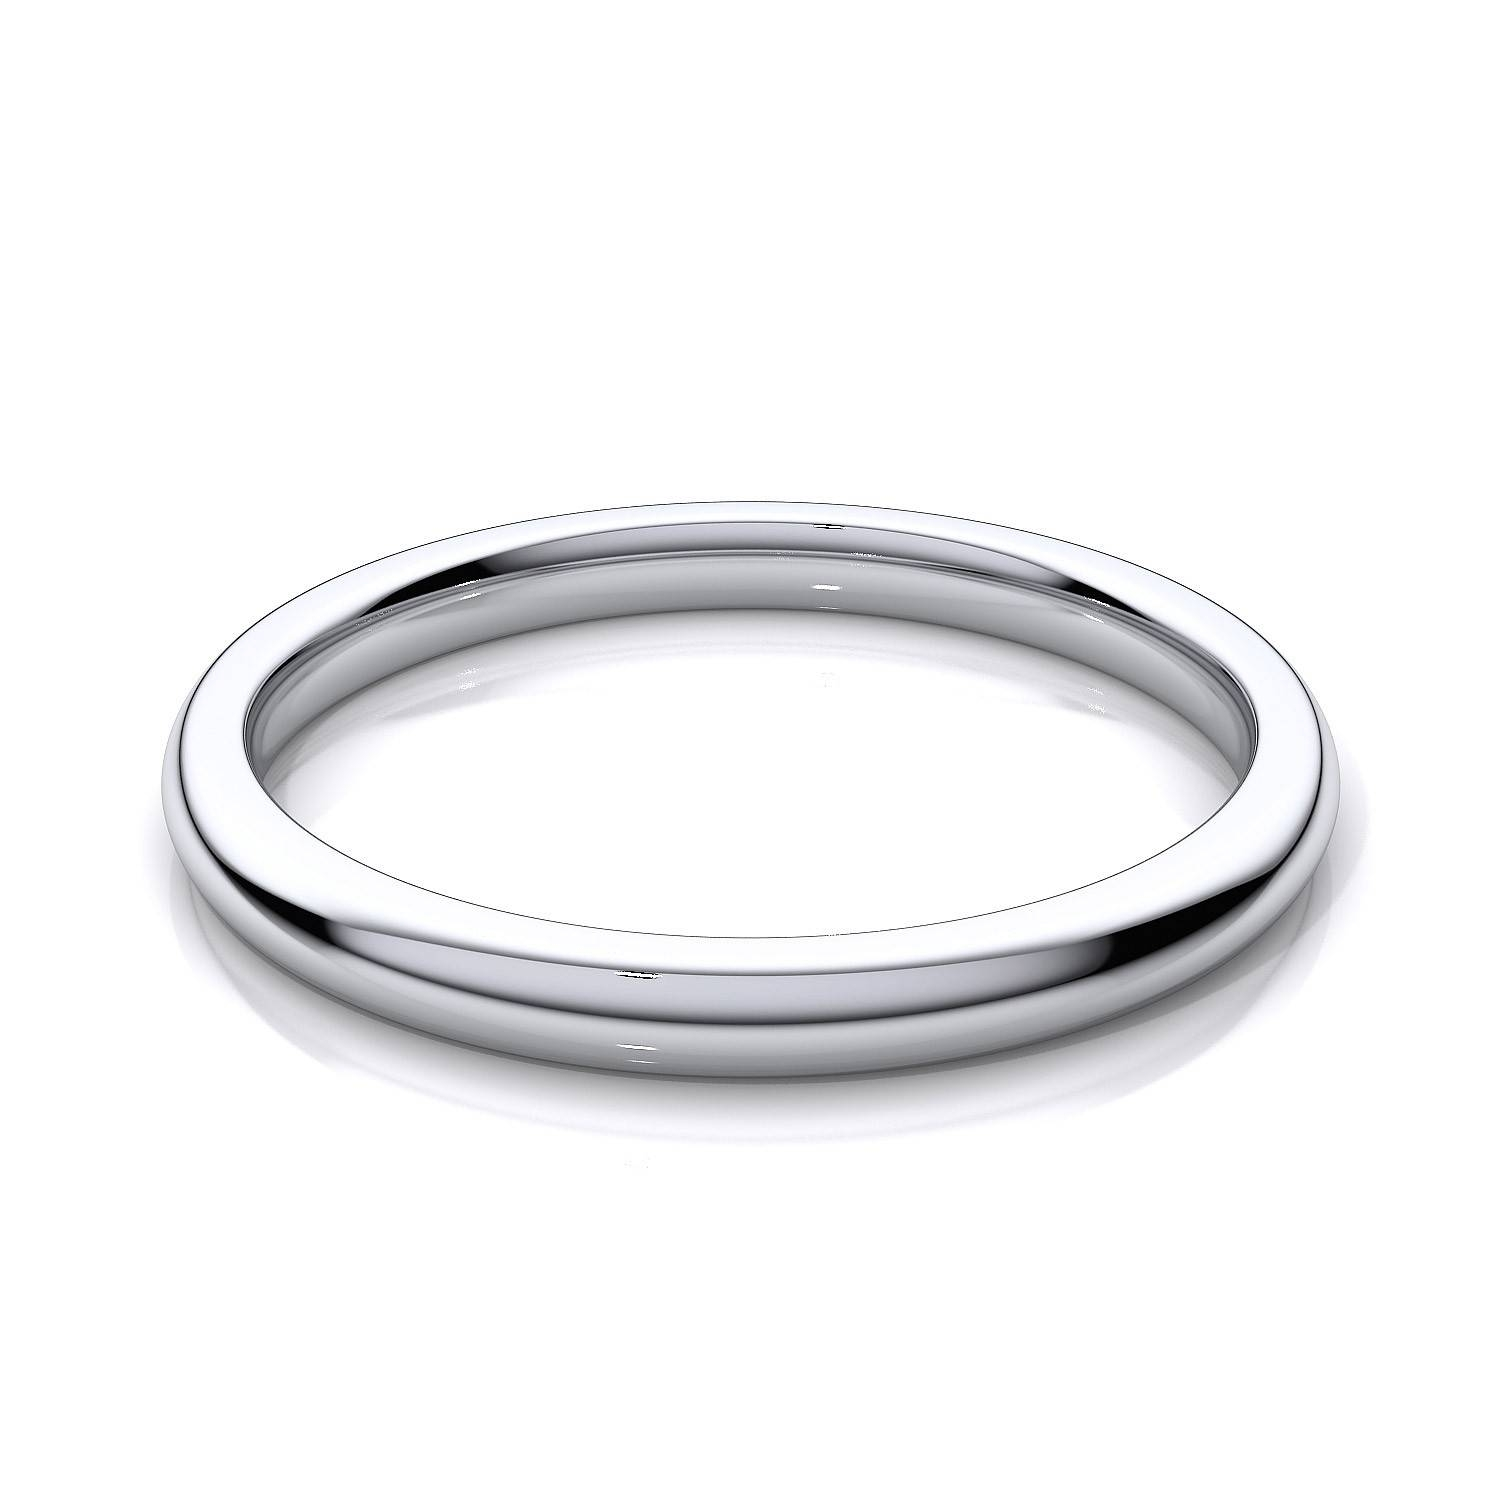 2Mm Women's Comfort Fit Plain Wedding Band In 14K White Gold Regarding White Gold And Gold Wedding Bands (View 5 of 15)